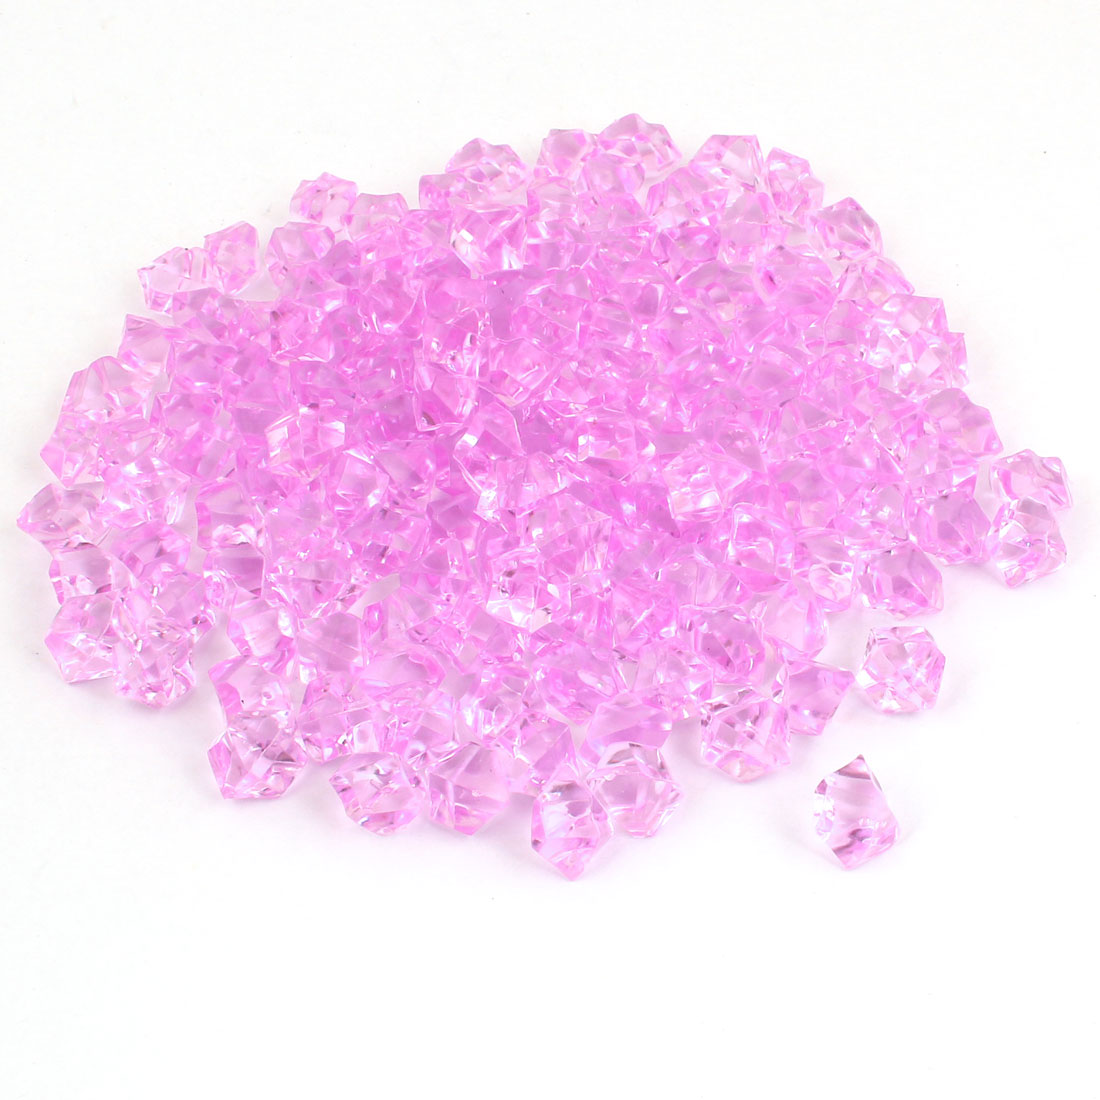 150 Pcs Plastic Crystal Stones Ornament Light Purple for Aquarium